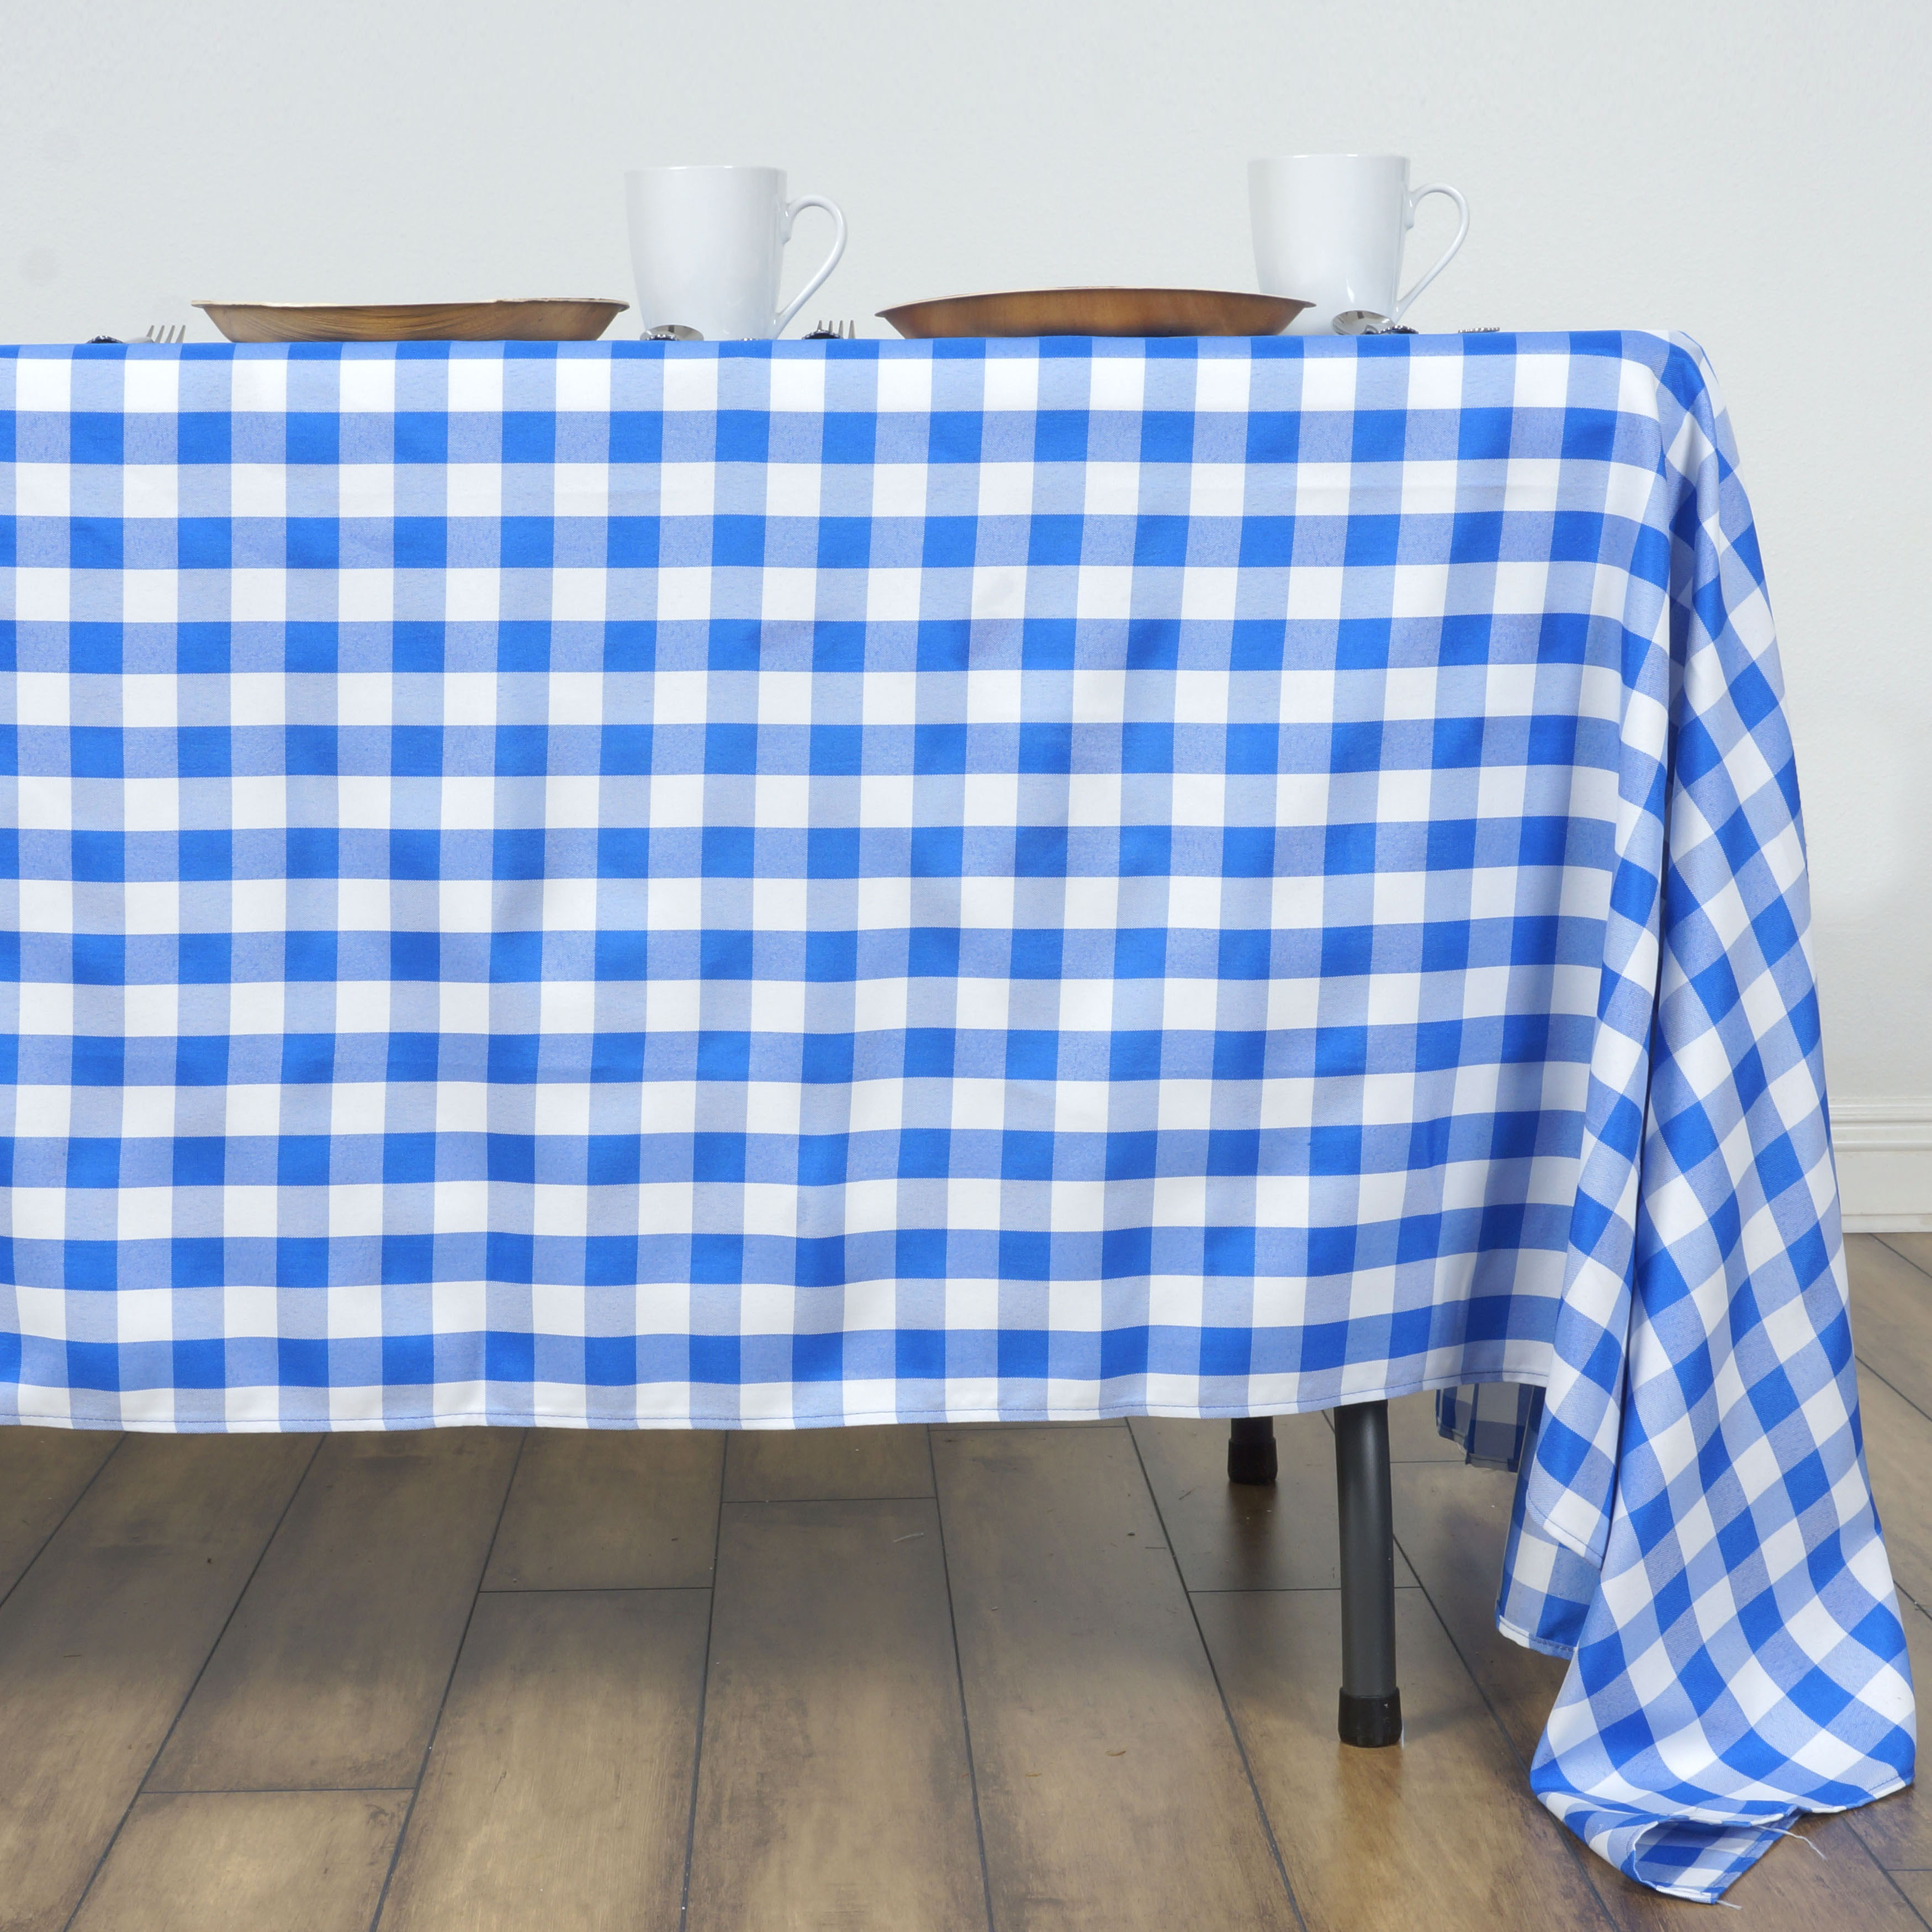 60x126 034 Checkered Gingham Tablecloth Polyester Rectangular Linens